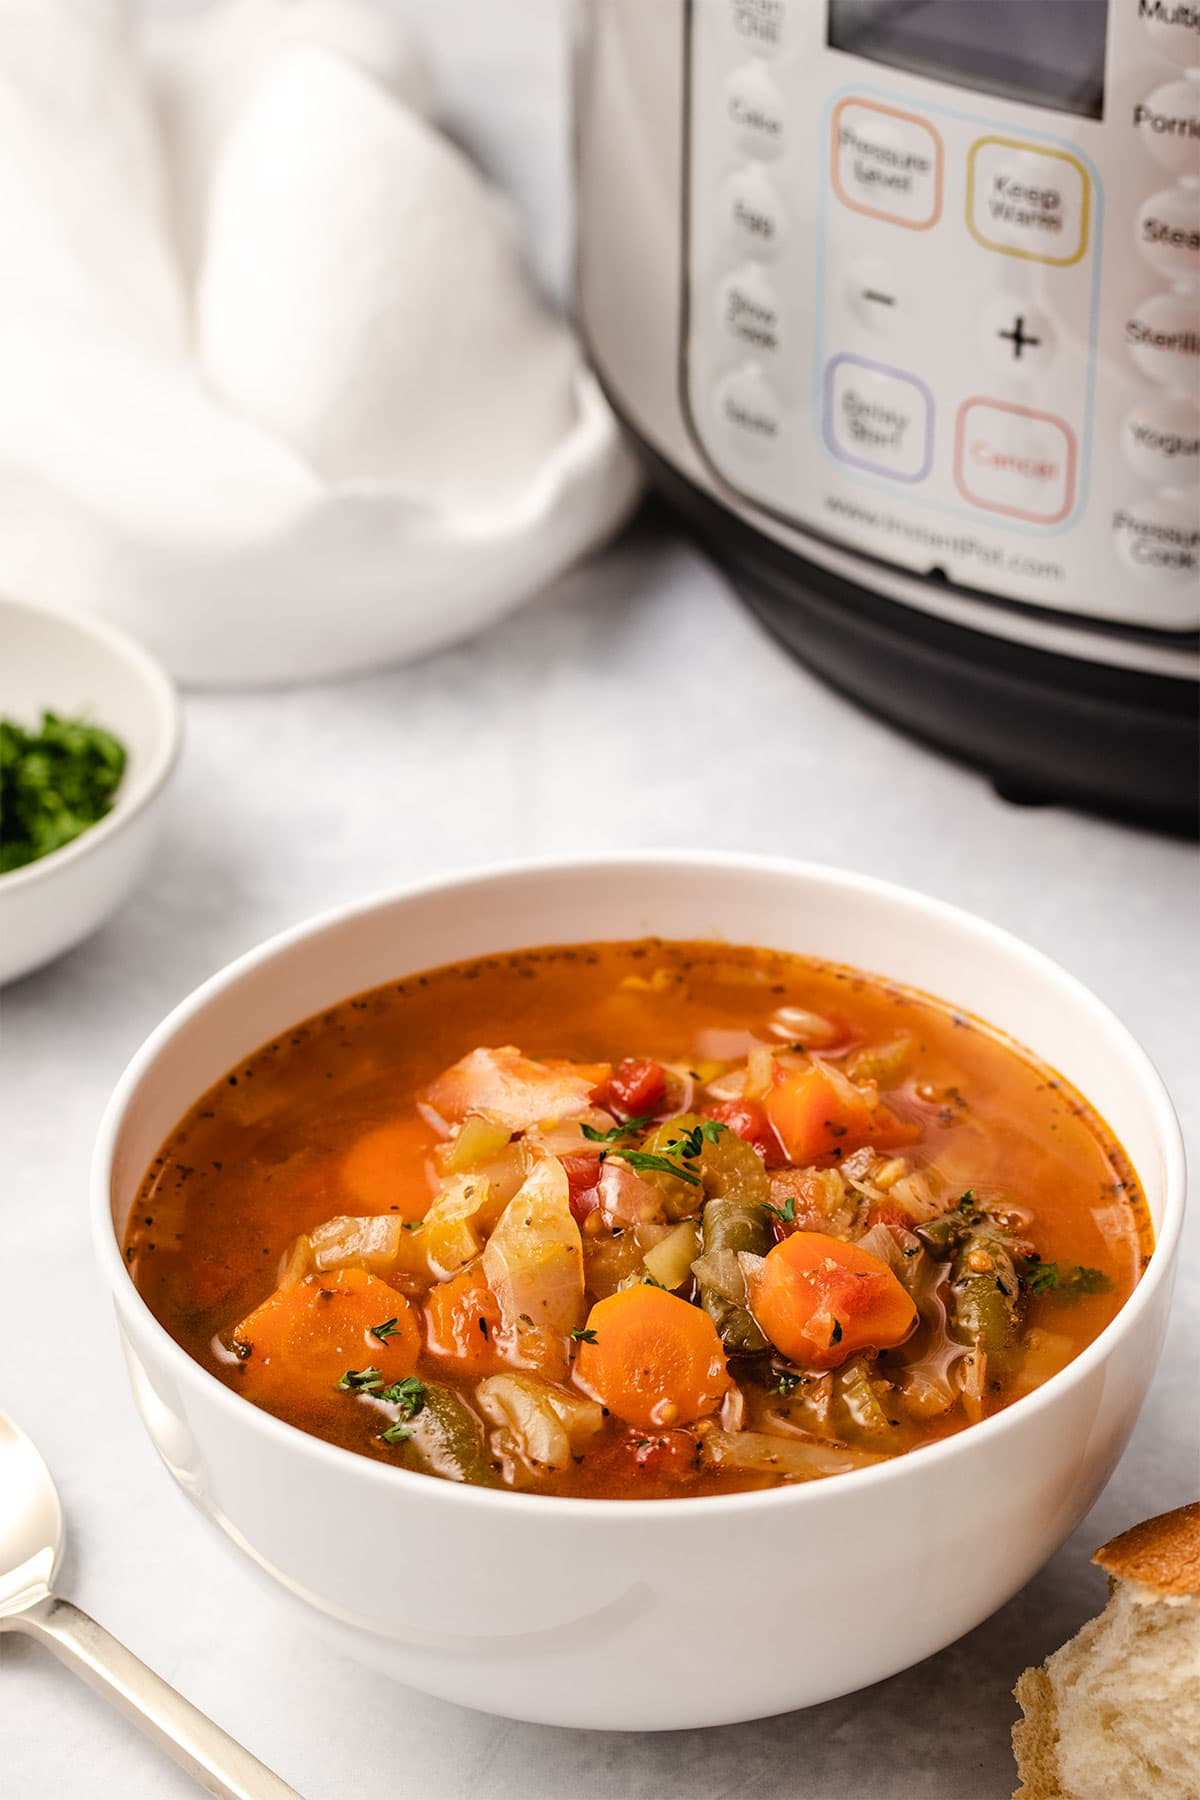 Cabbage Soup in a white bowl placed in front of an Instant Pot.